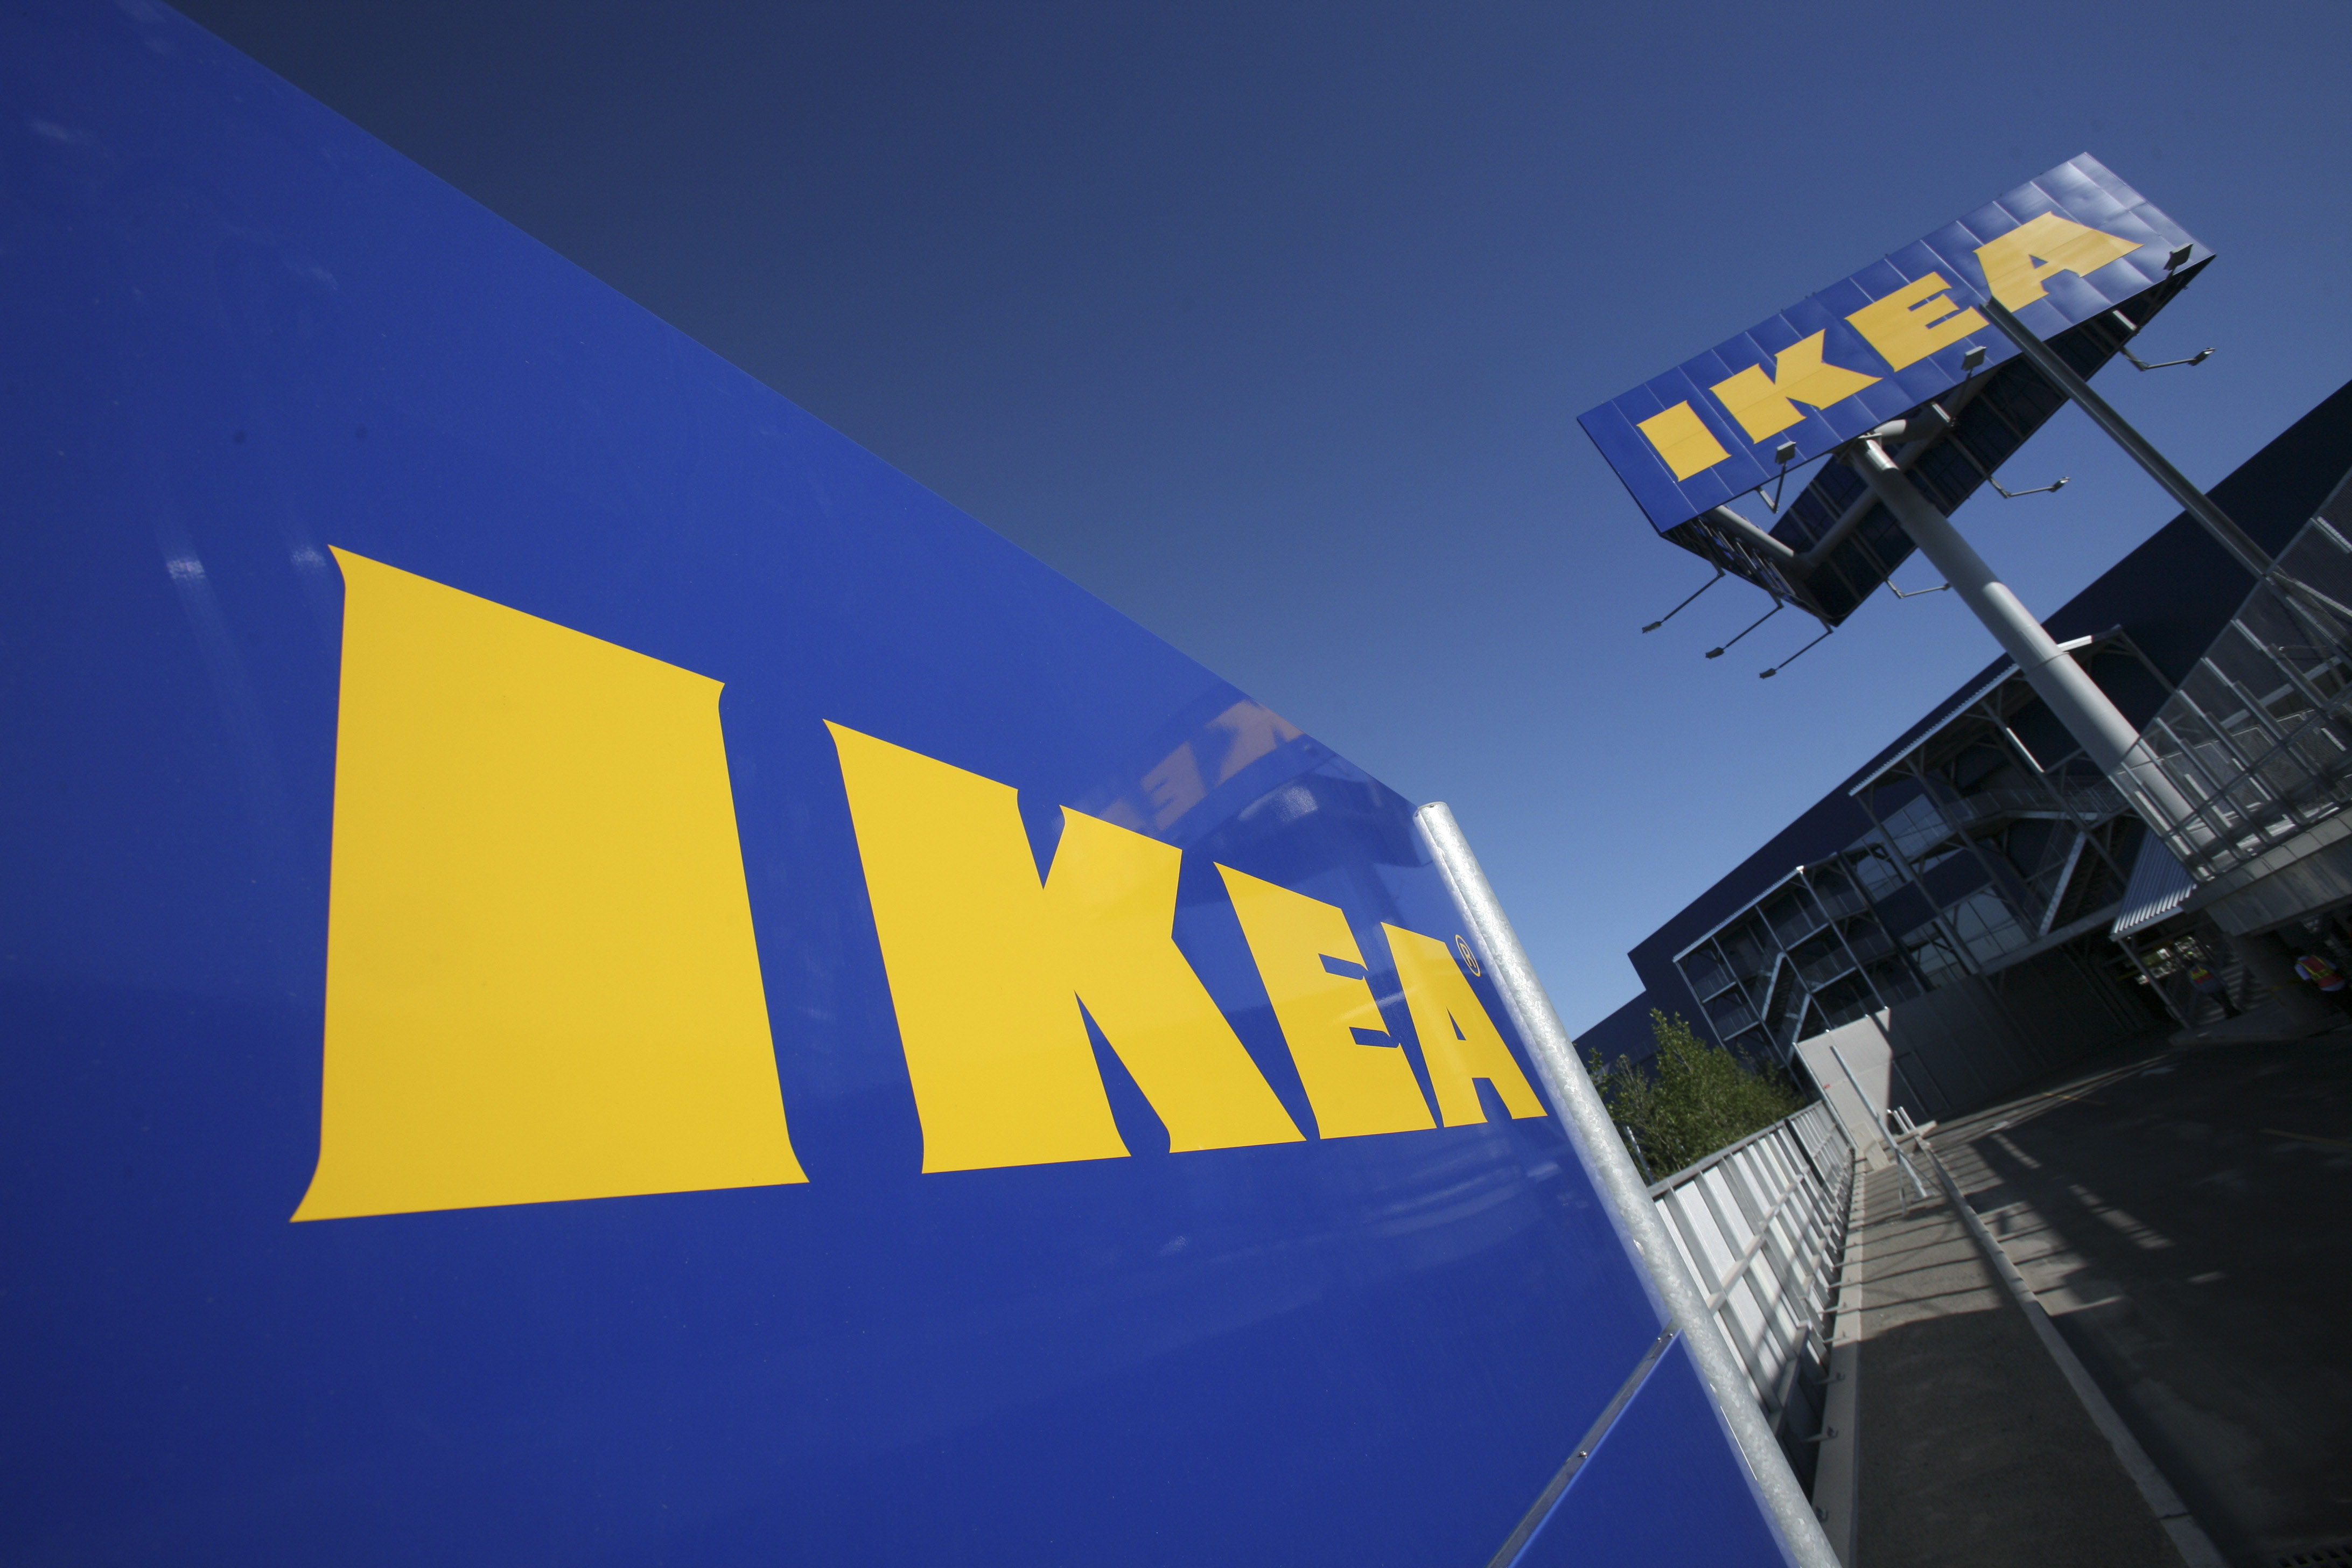 IKEA to open Order and Collection Point in Aberdeen next week